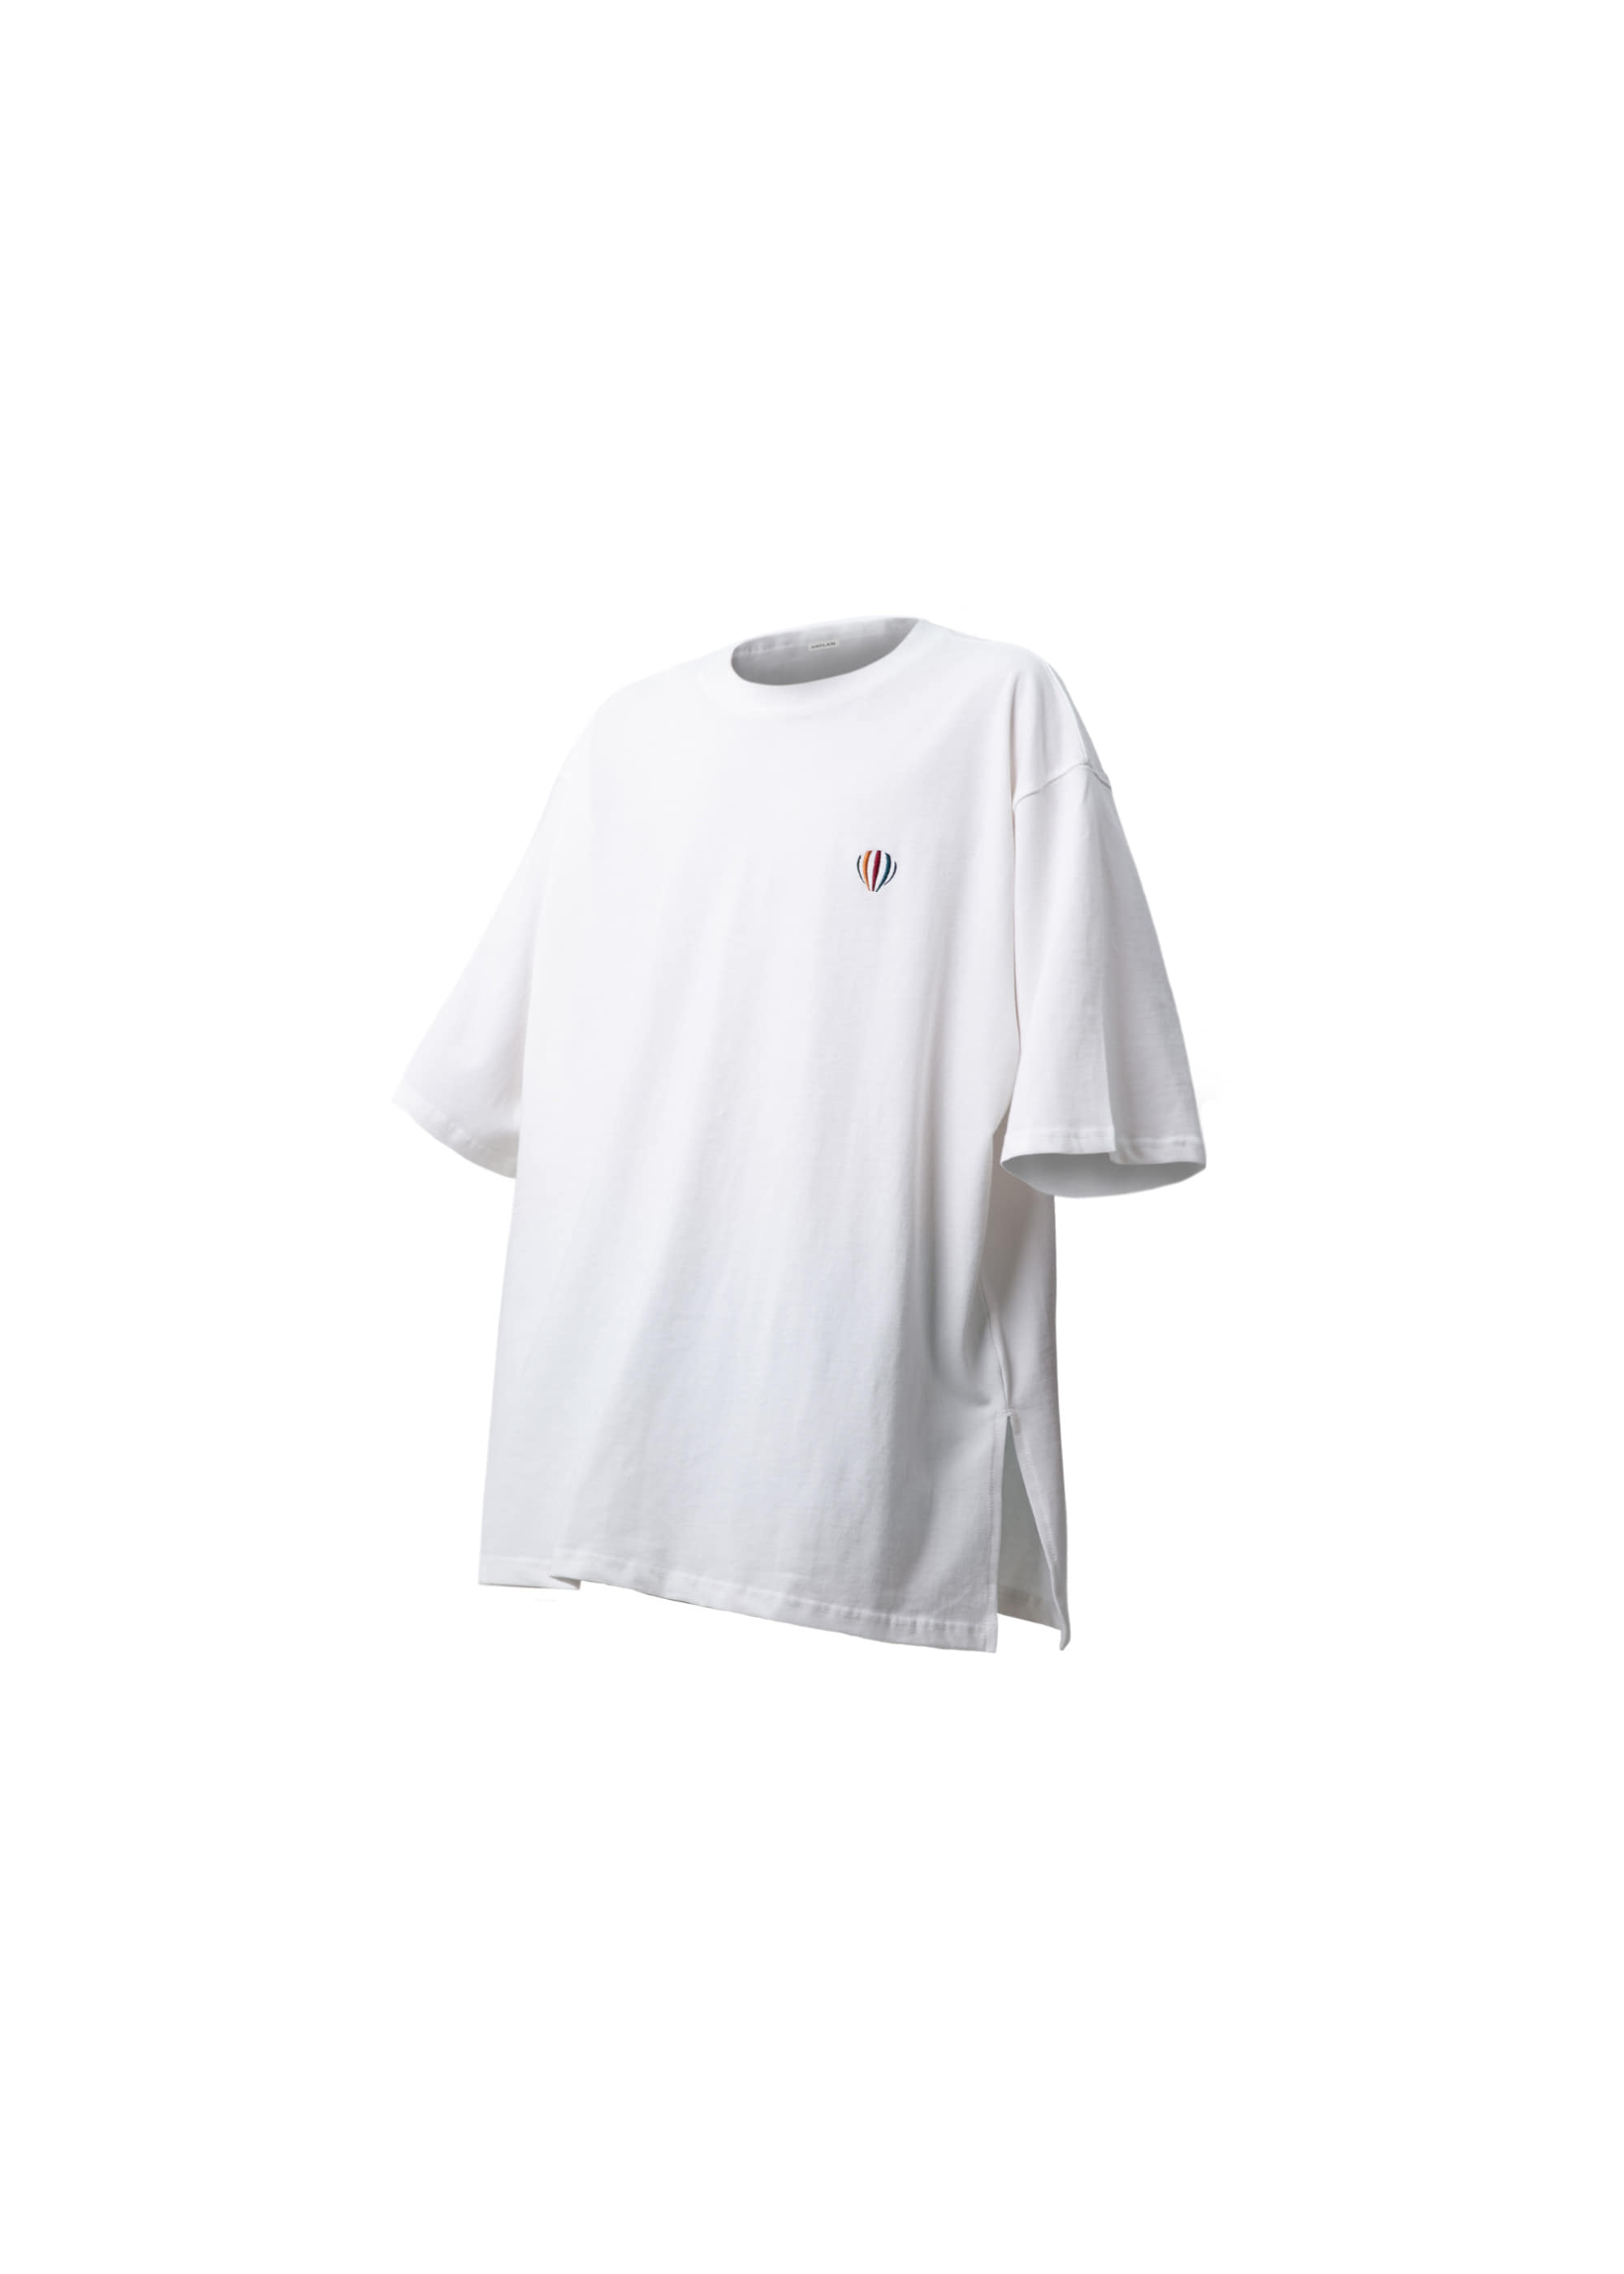 [AG] Balloon Logo Side Opening Tee - White